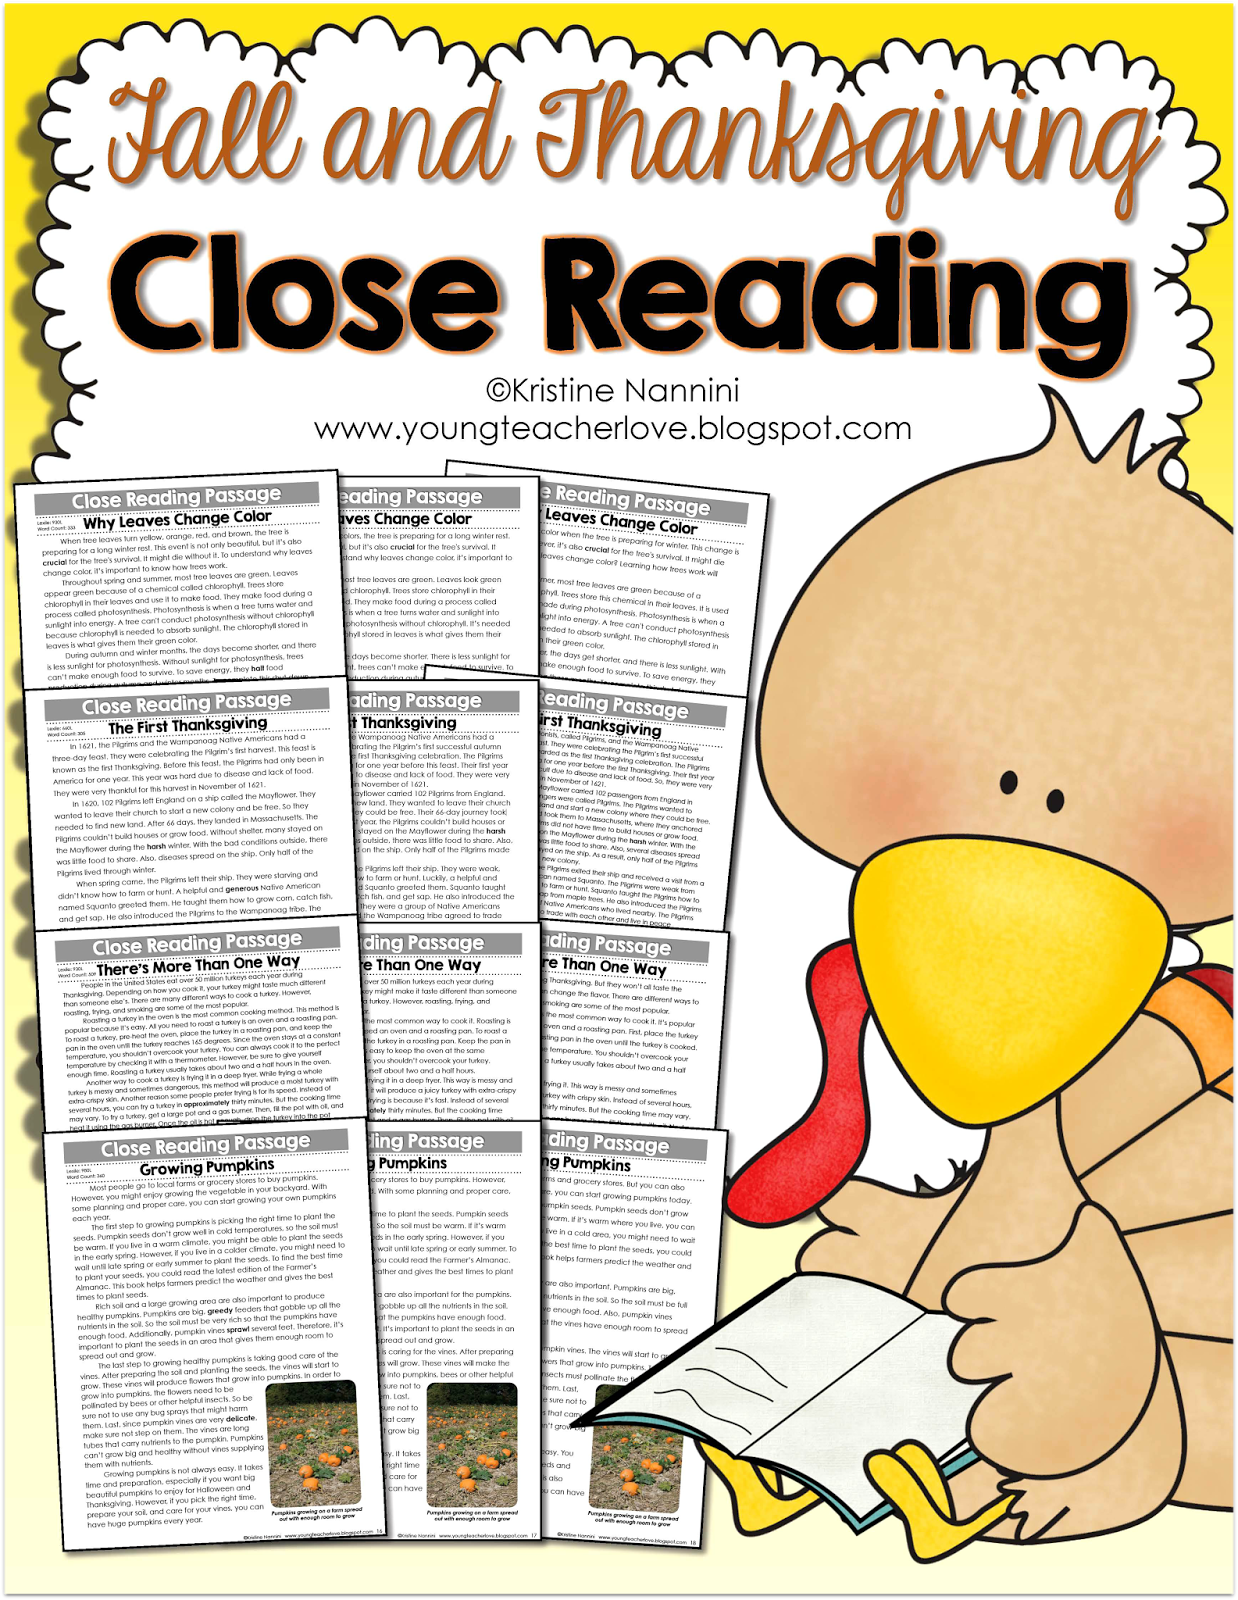 worksheet Thanksgiving Reading Comprehension Worksheets fall and thanksgiving close reading passages text dependent questions more young teacher love